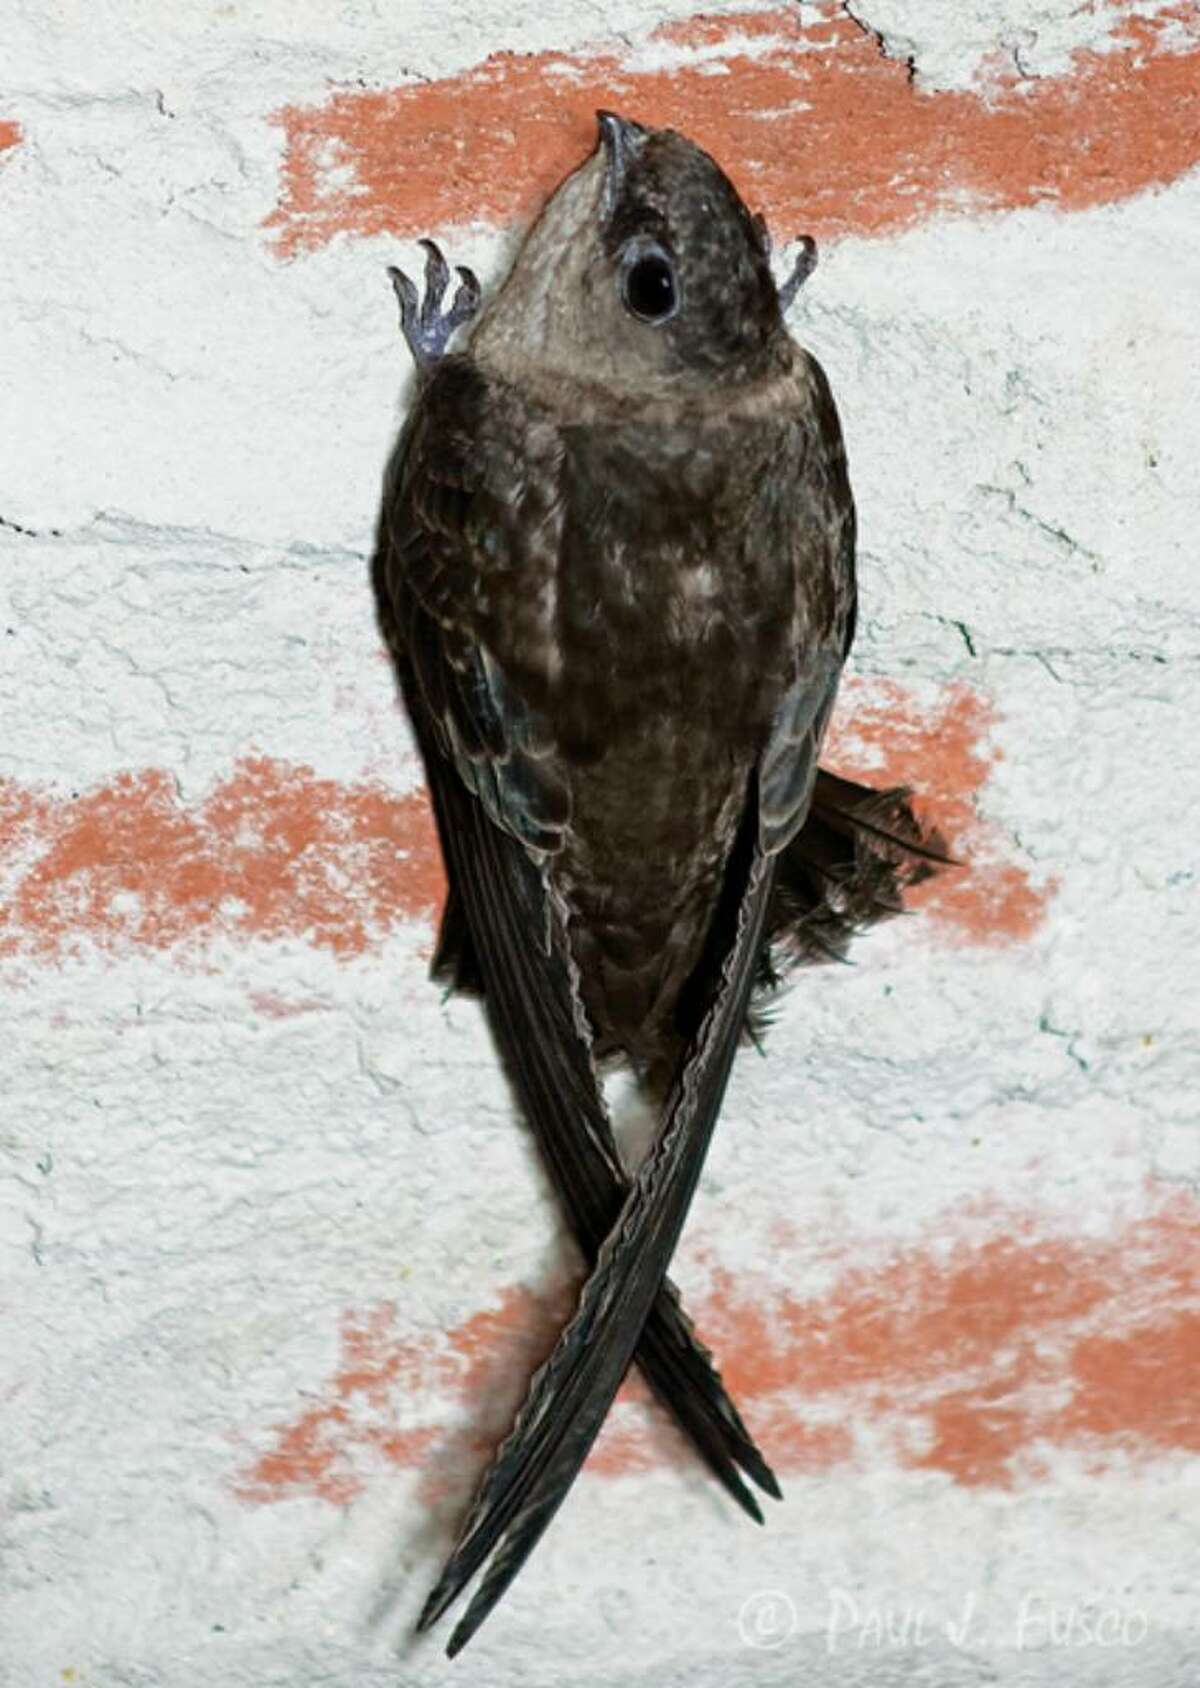 Paul Fusco/Conn. DEP The chimney swift, once one of the more common birds a few decades ago, has become difficult to find in recent years, and some biologists fear that they are in sharp decline.